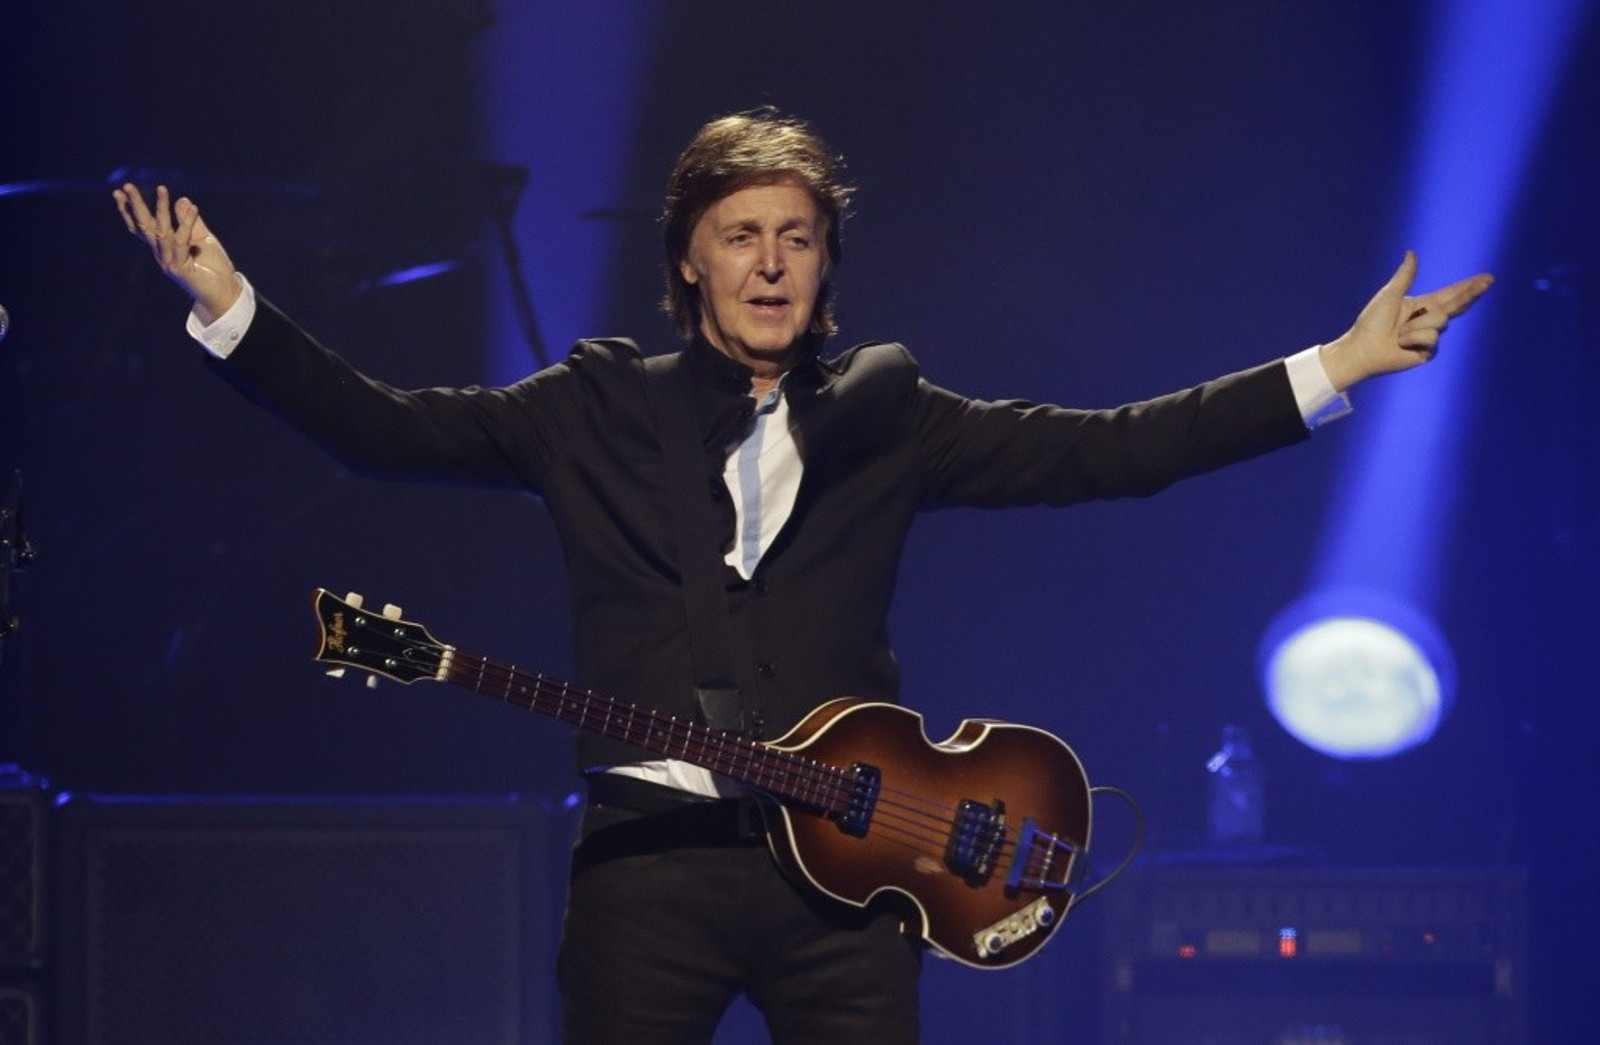 5 Fantastic Reasons Why Paul McCartney is the Ultimate Animal Rights Superstar